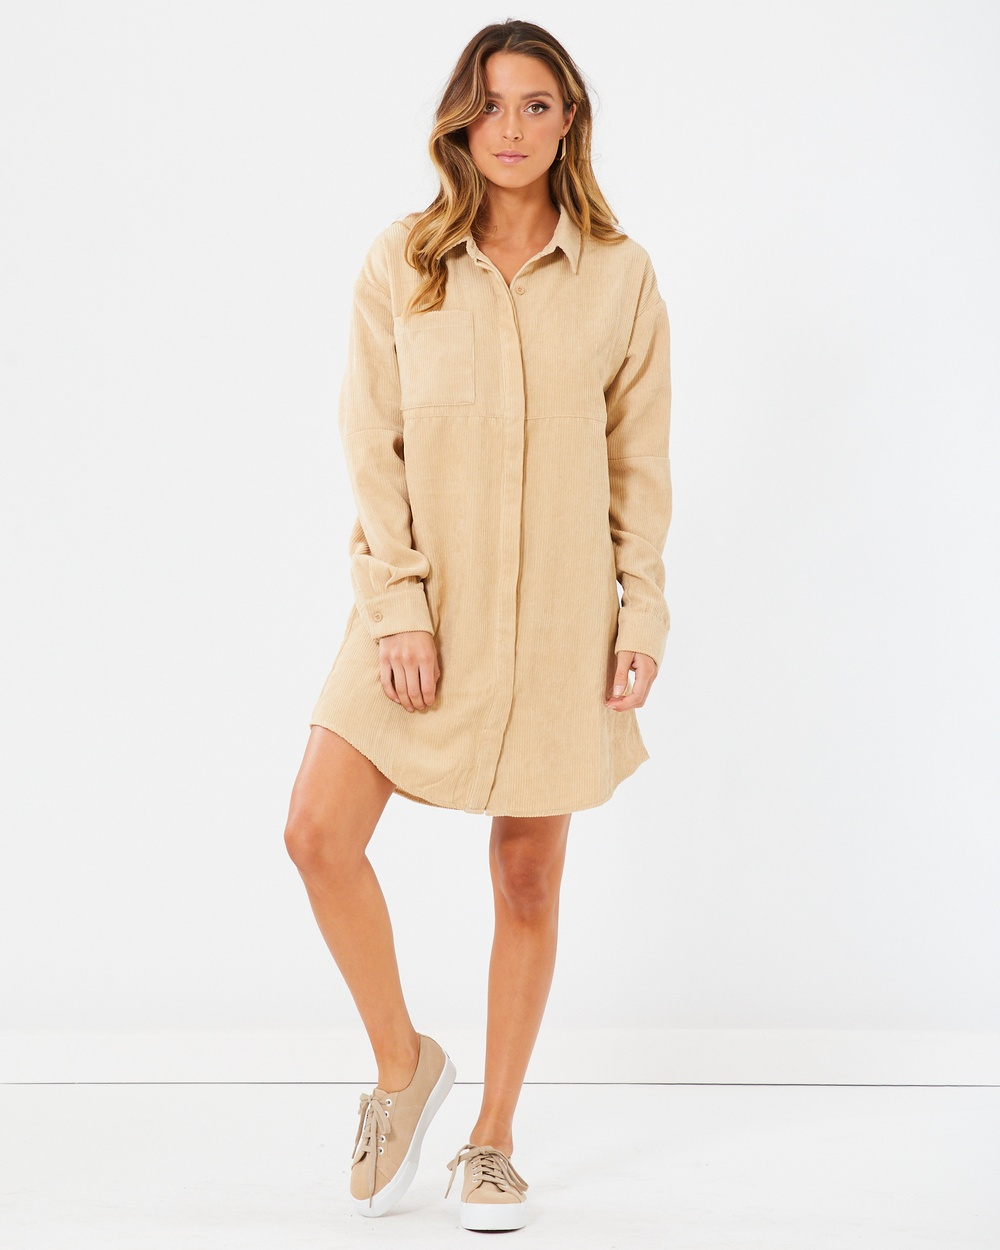 Photo of Calli Calli Brenda Dress Dresses Beige Brenda Dress - The Brenda Dress by CALLI, is the perfect piece to revive your wardrobe. Cut in a Corduroy fabrication, this dress features a shift silhouette, full-length sleeves, classic collared neckline, button up front and a functional pocket. This piece can easily be dressed up or down, simply add boots and a belt for a party look or sneakers for a daytime look. Our model is wearing a size AU 8 dress. S